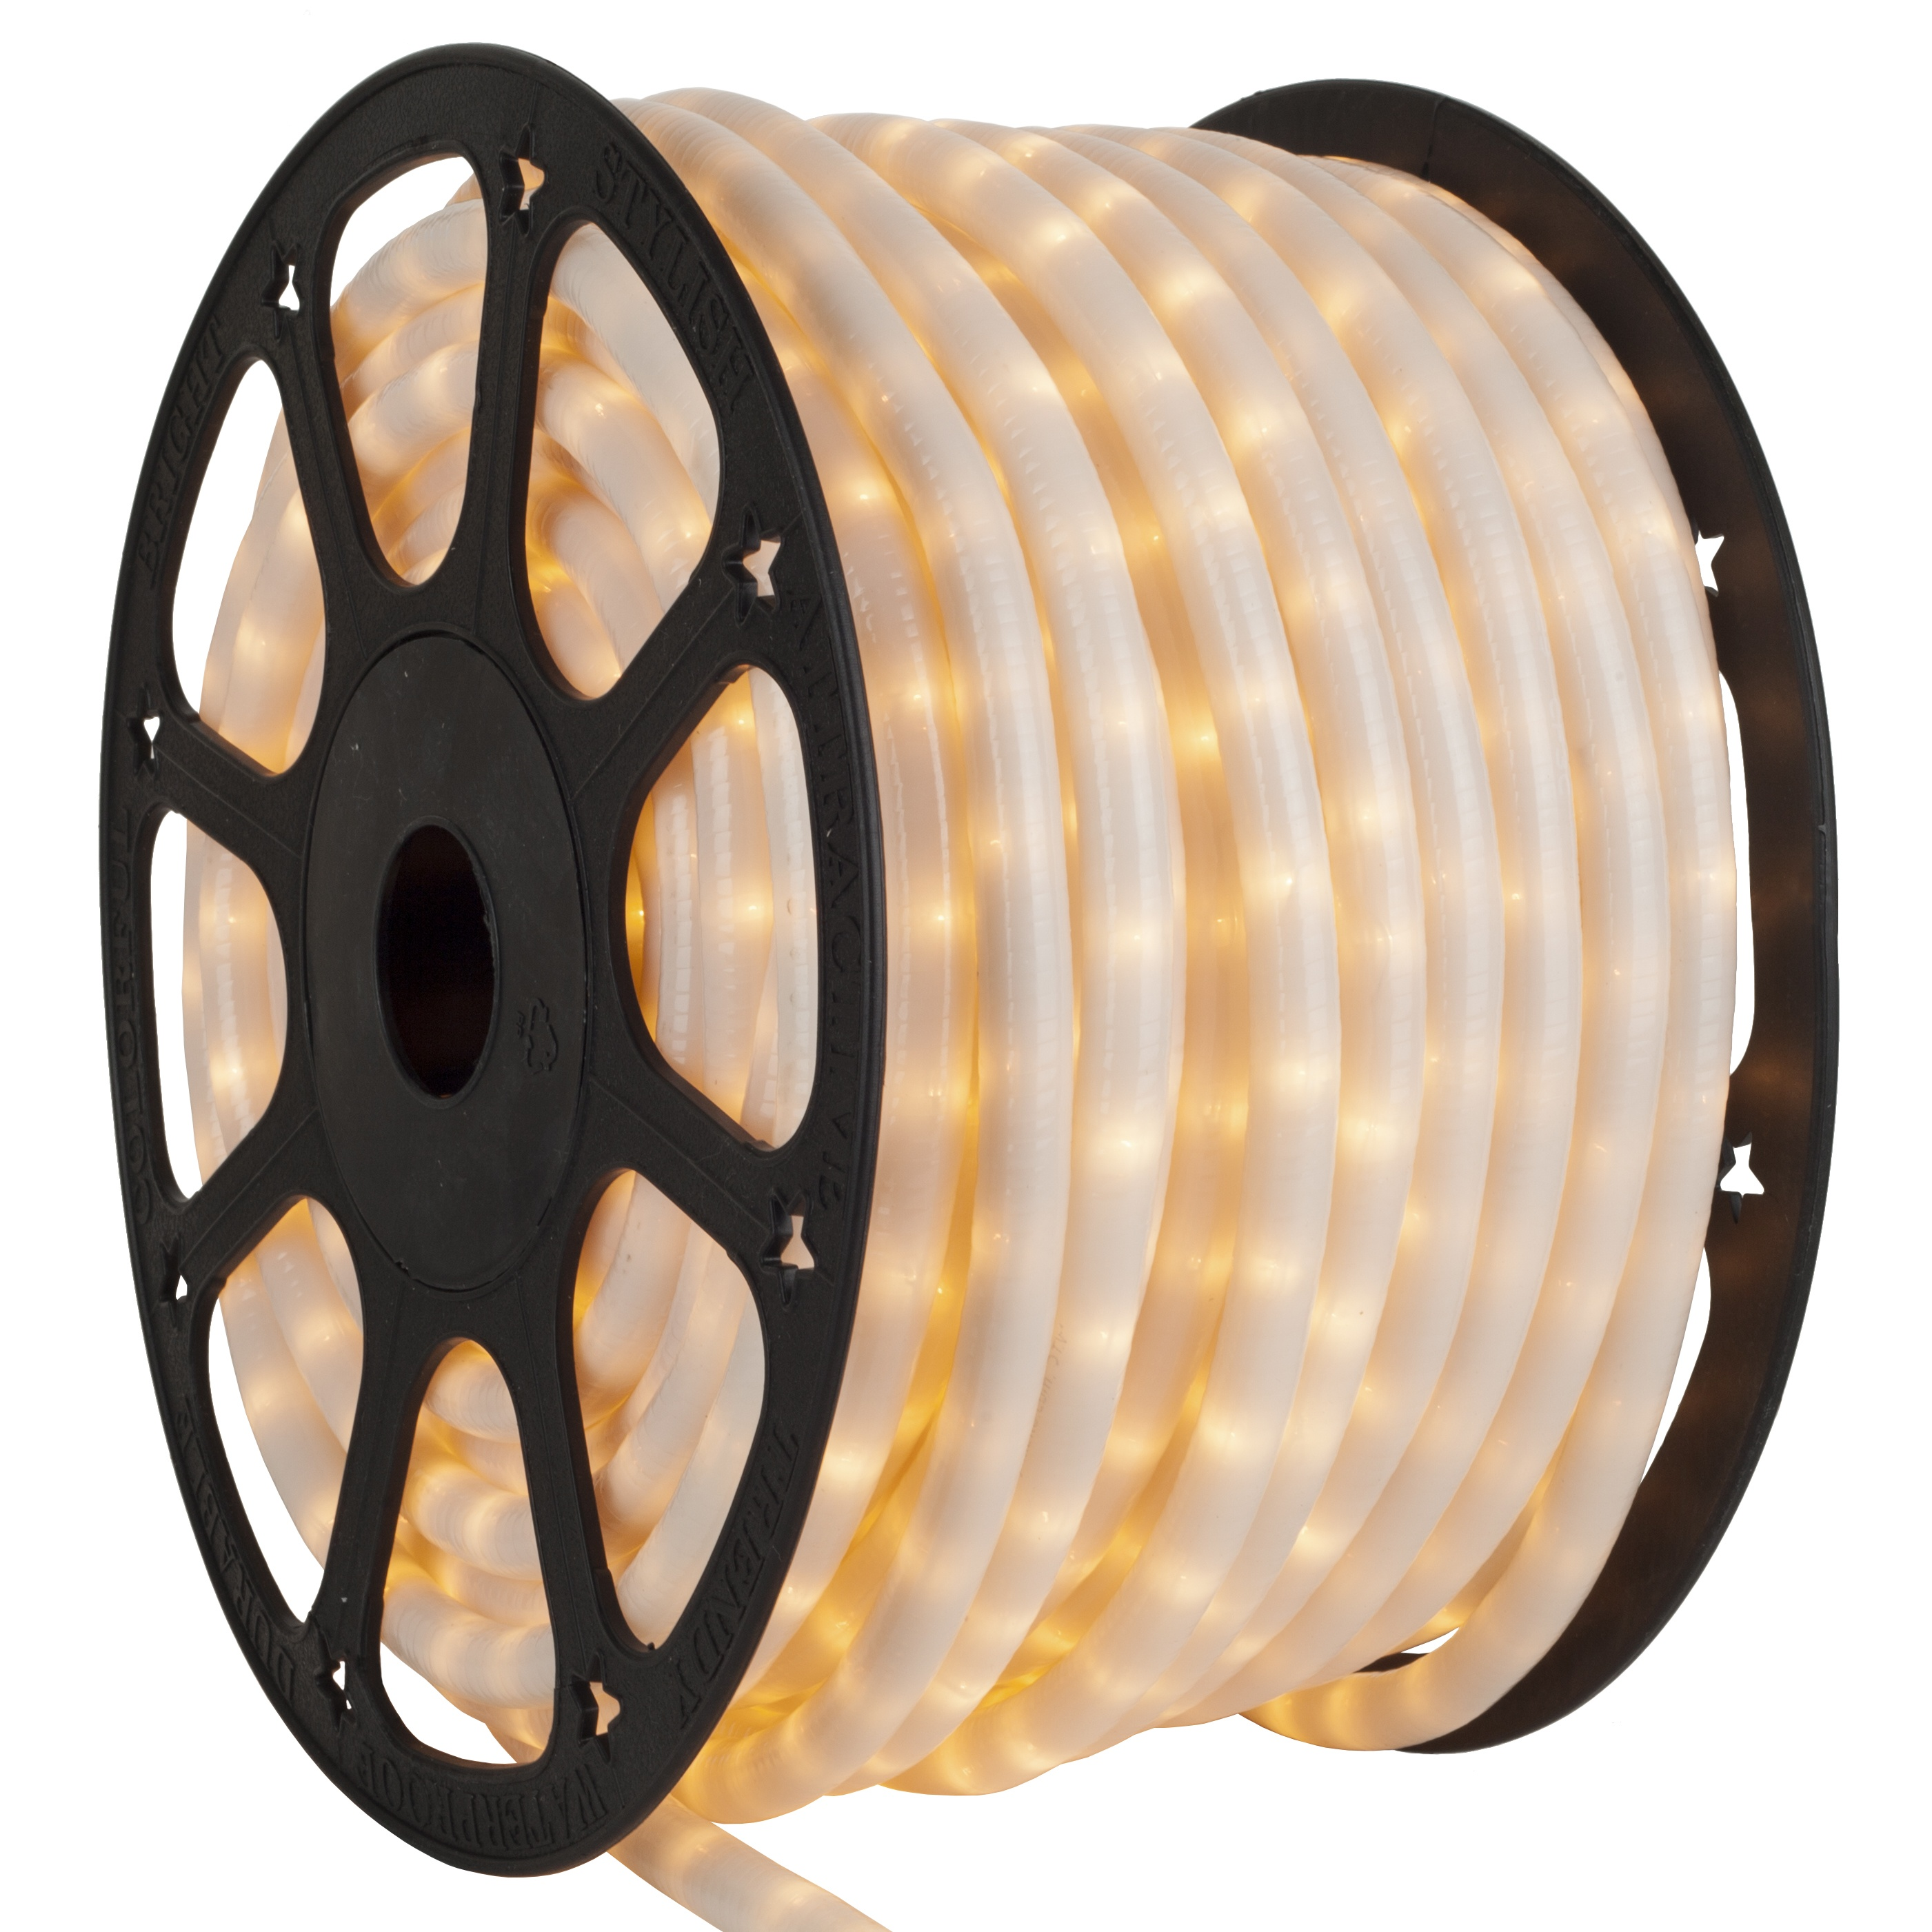 Pearl white rope lights 120 volt yard envy mozeypictures Gallery